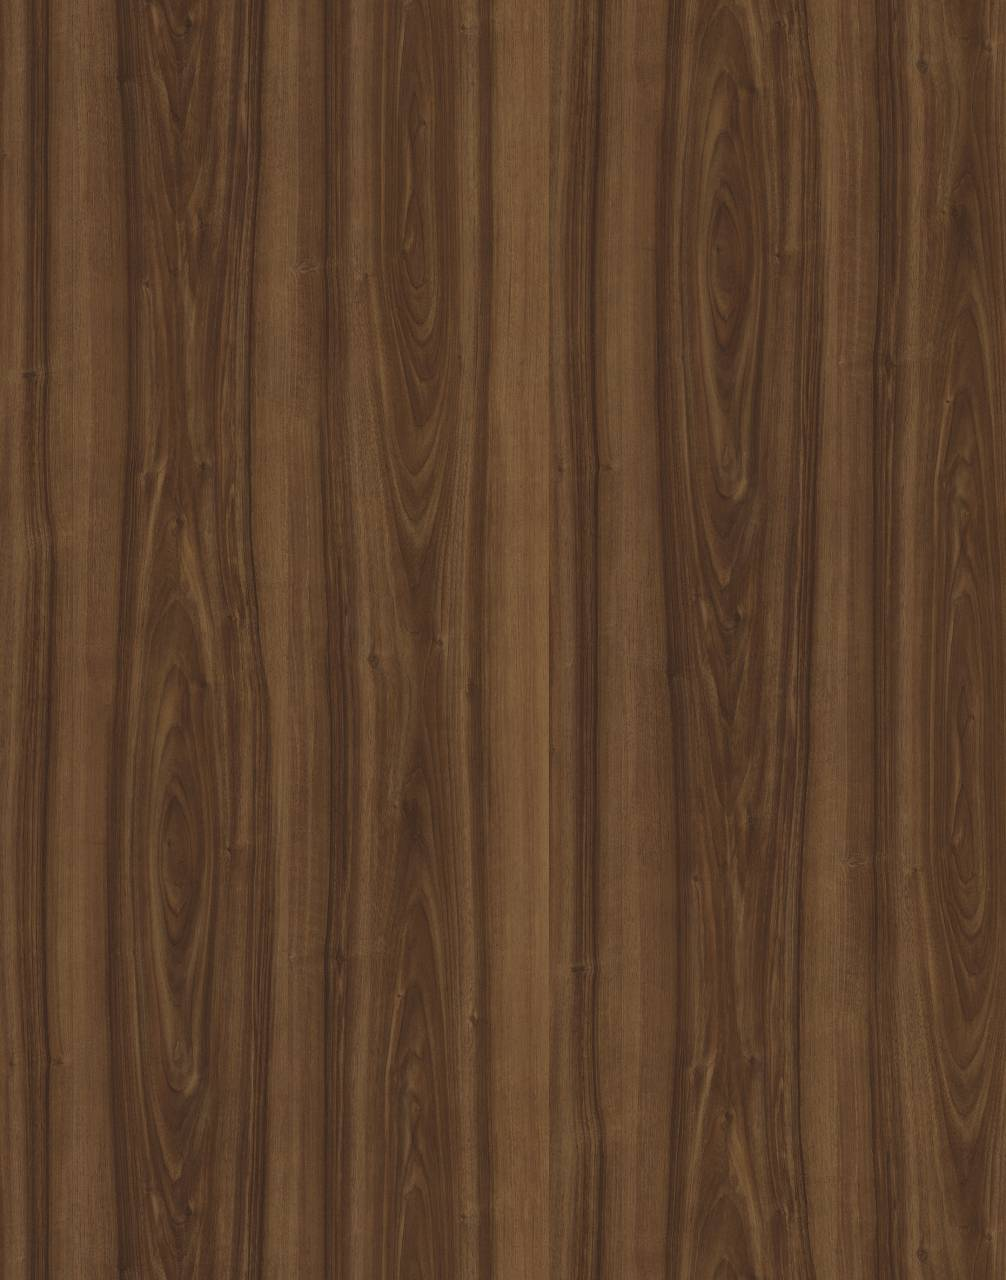 0729 Walnut (MF PB sample)